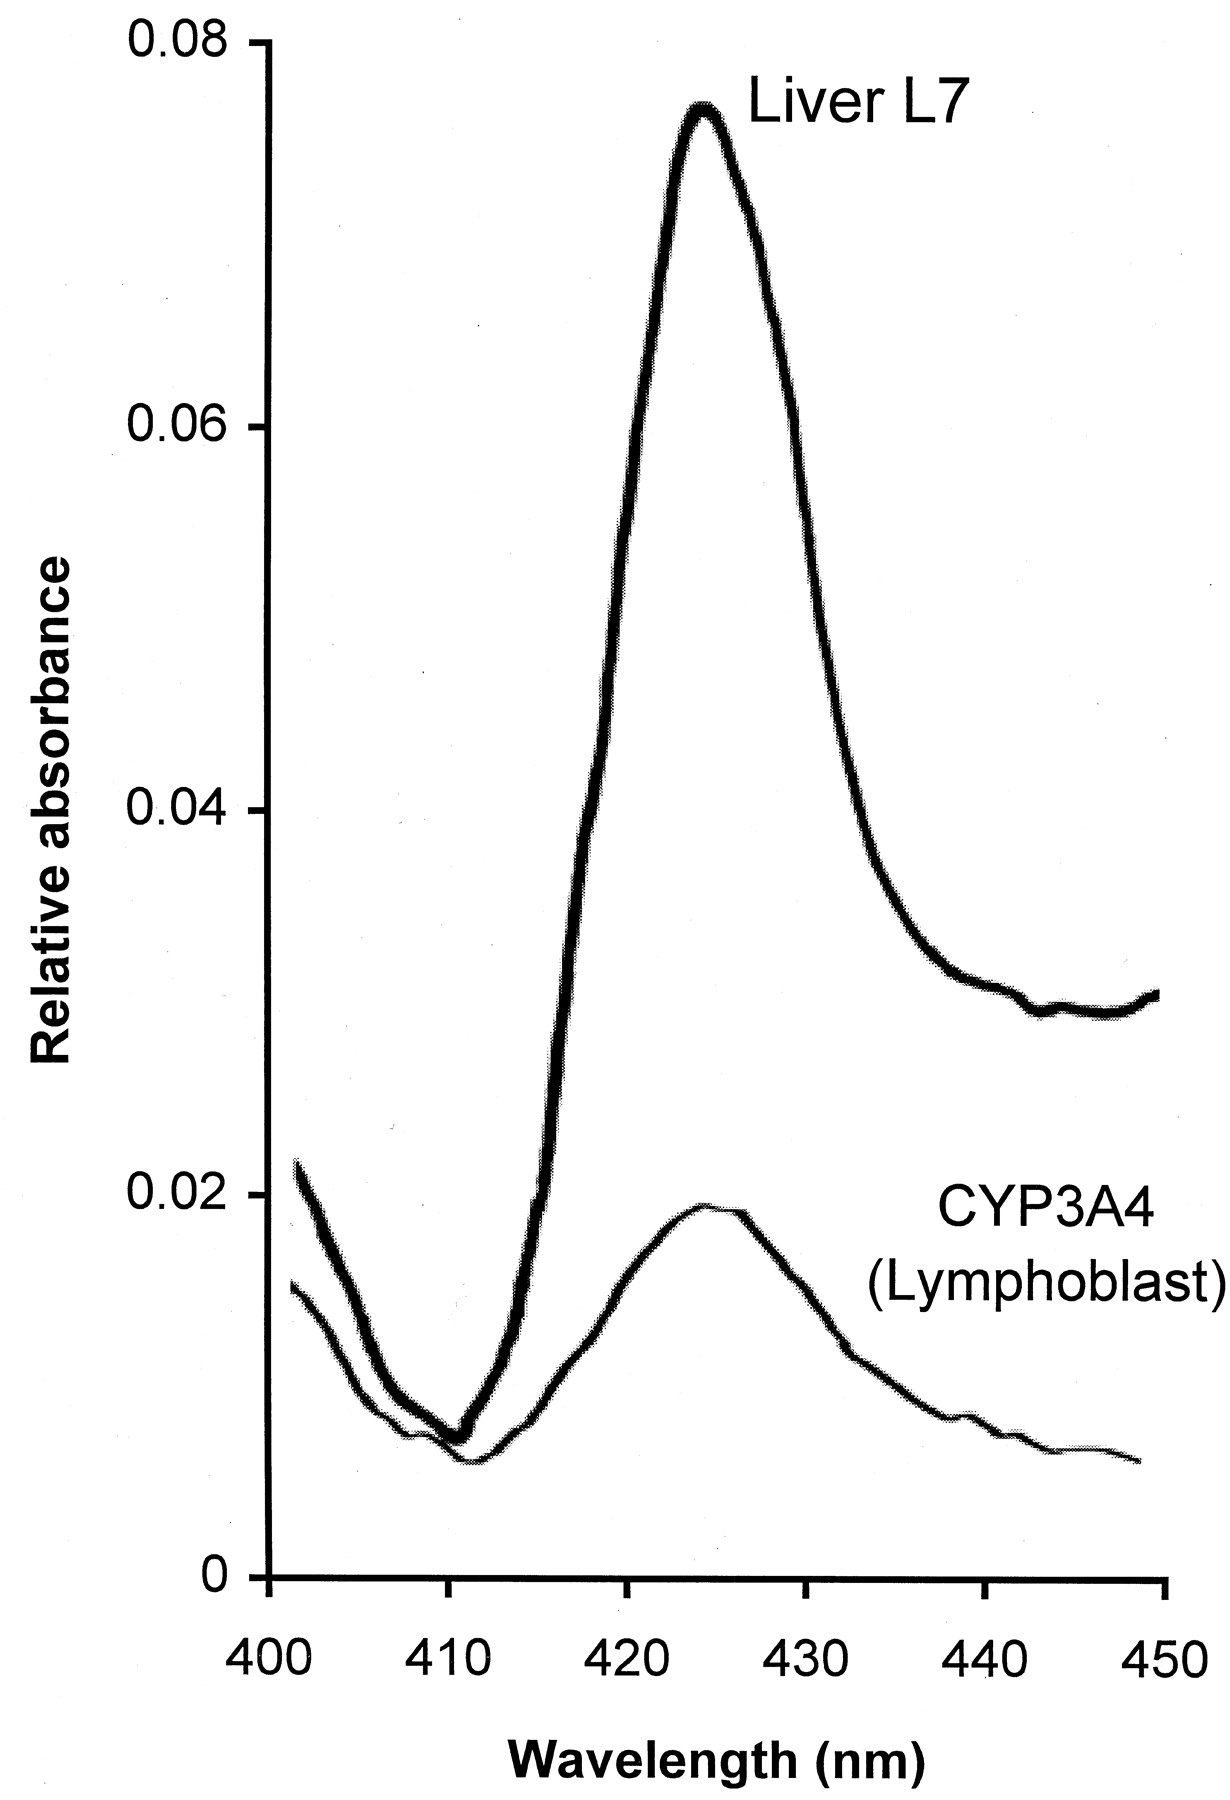 Comparison between Cytochrome P450 (CYP) Content and